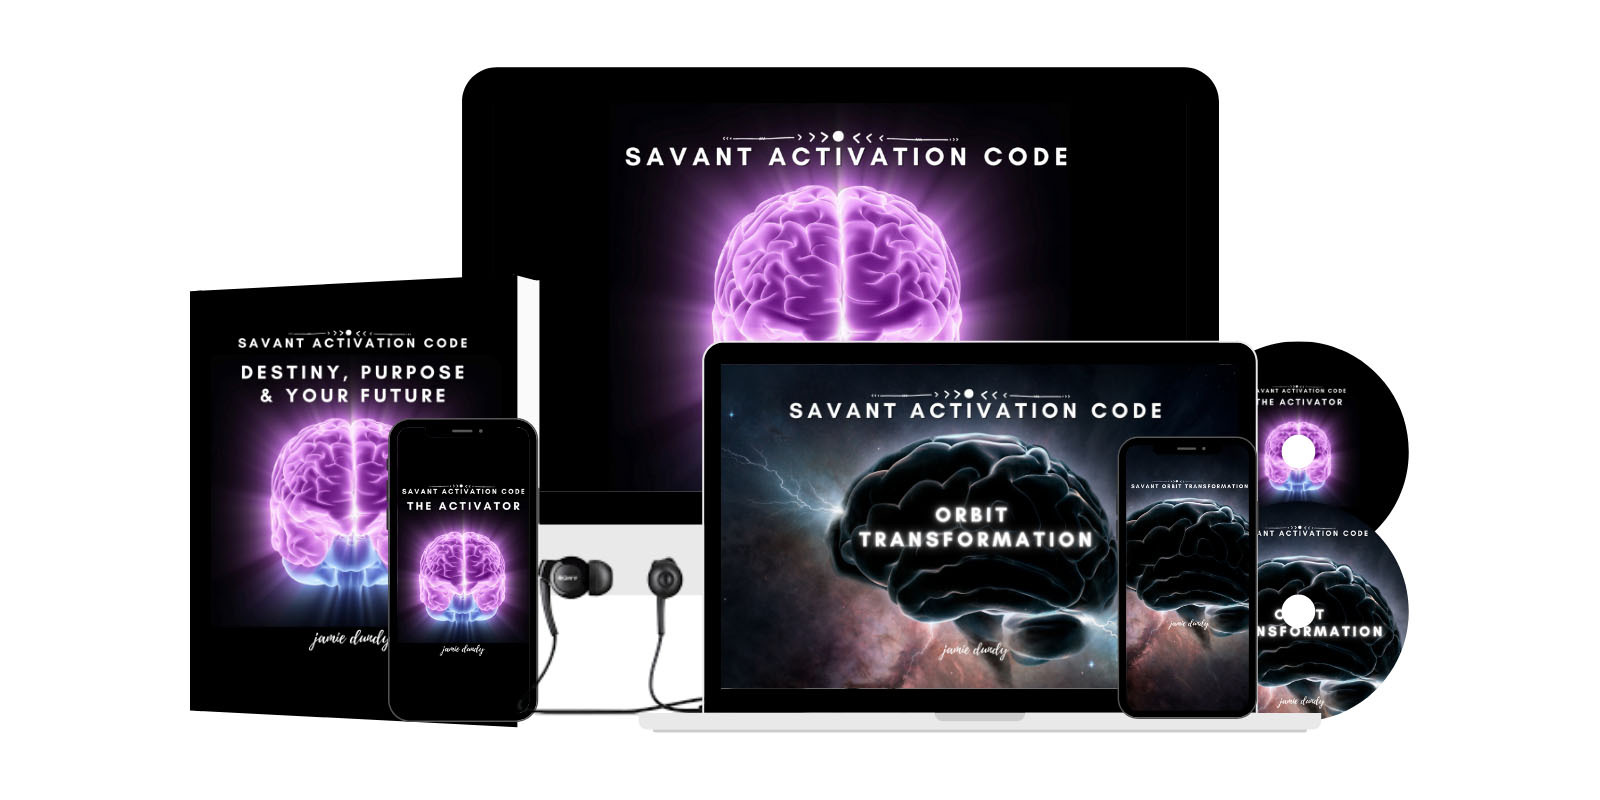 The Savant Activation Code Reviews – Detailed Report On Savant Activation Code Program 10